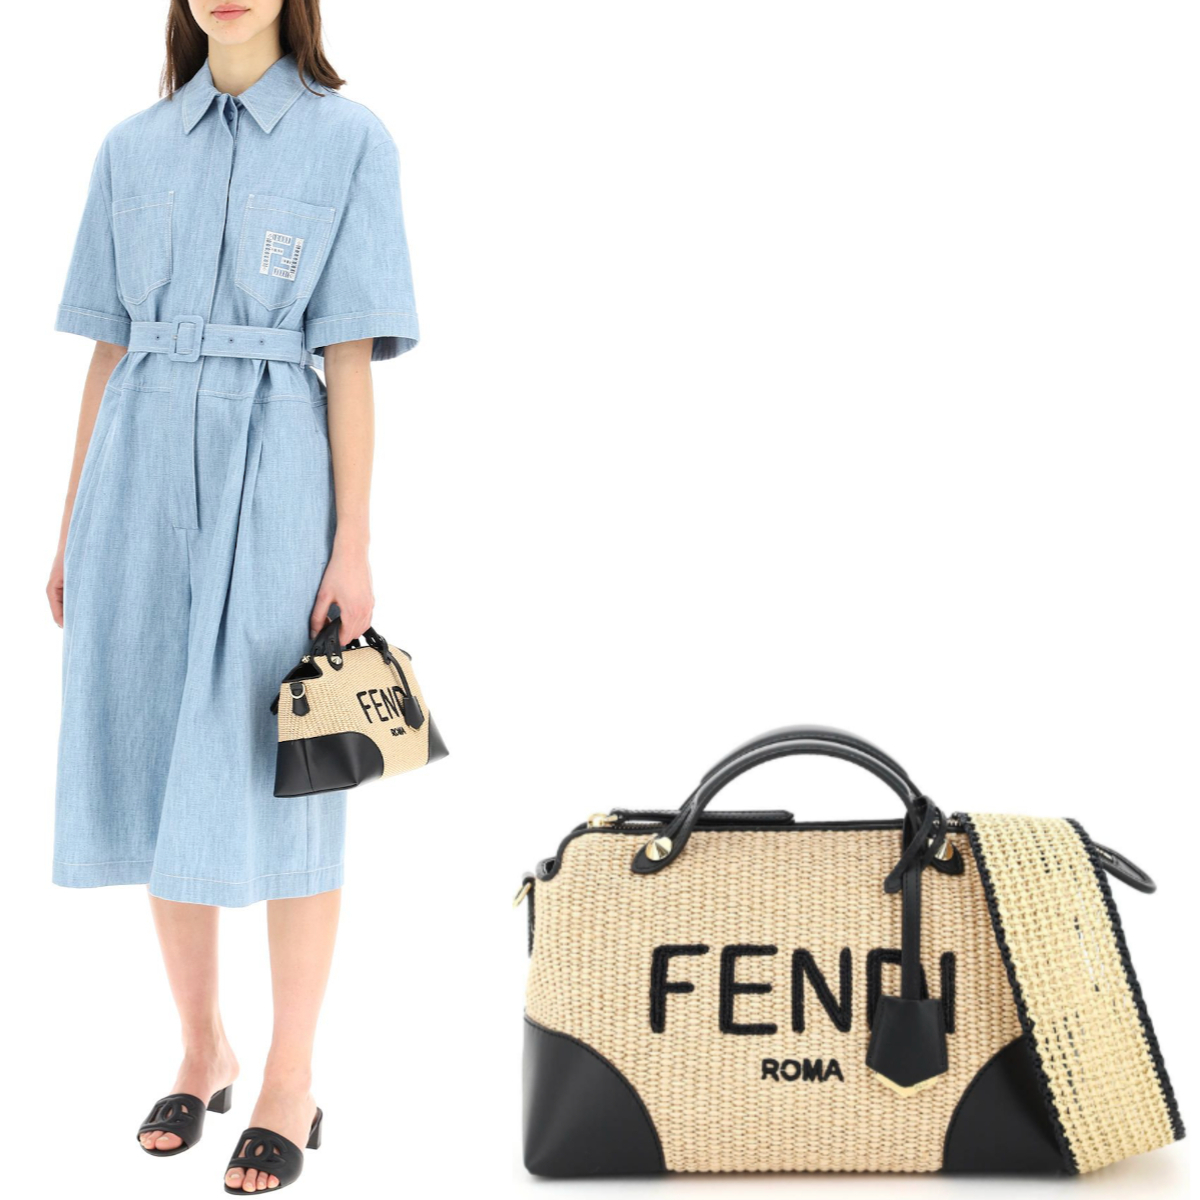 FE2867 BY THE WAY (FENDI/ショルダーバッグ・ポシェット) 8BL146AF2XF1E1I